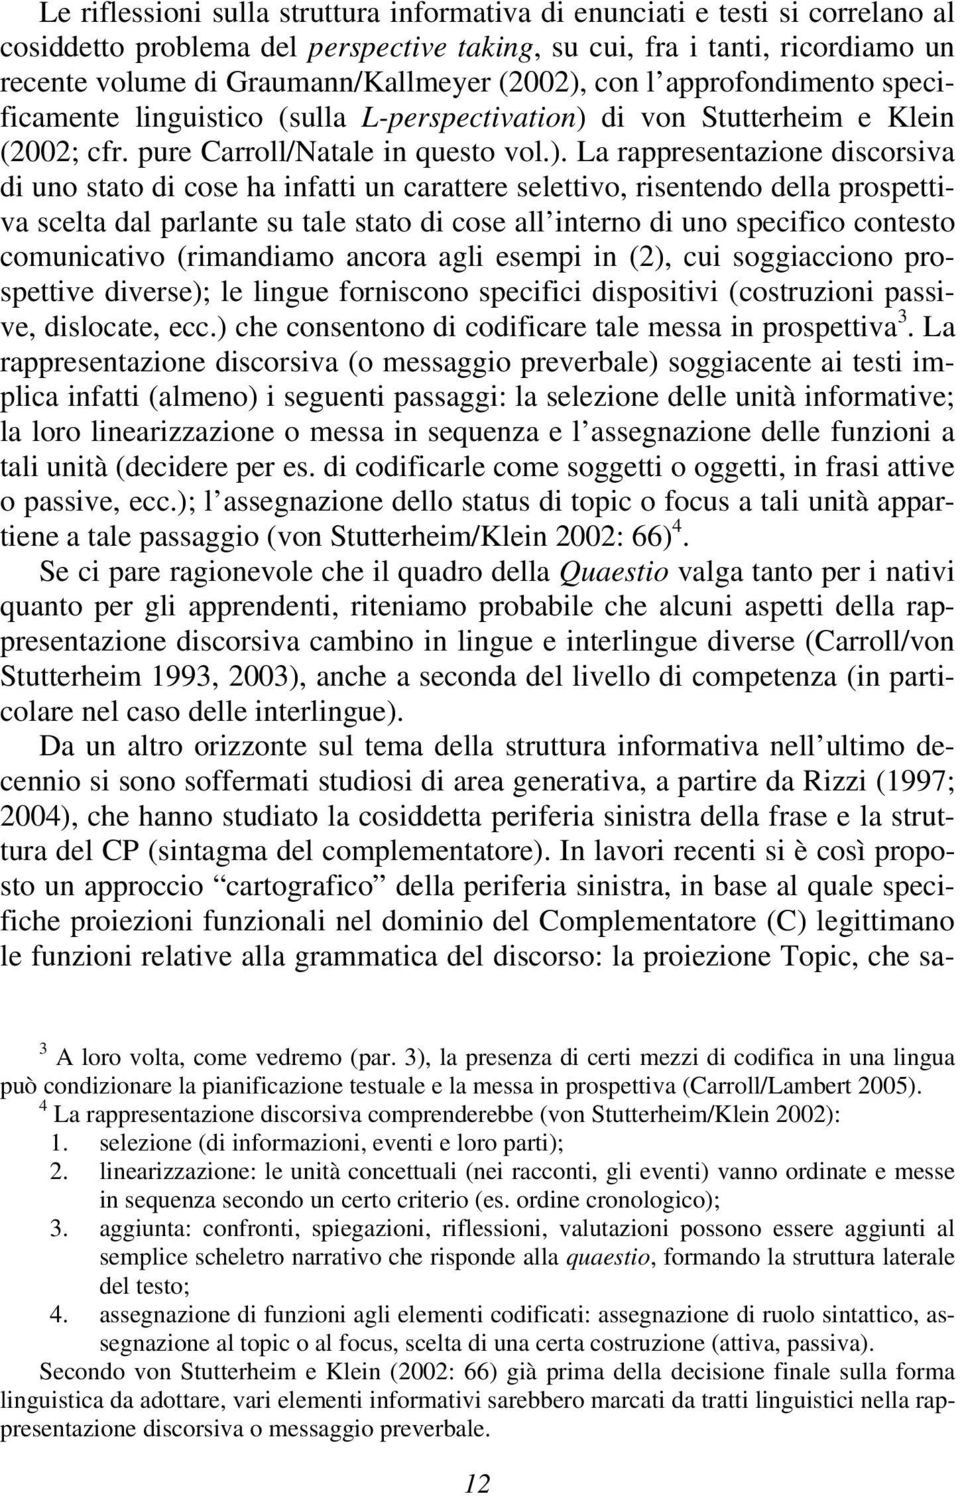 con l approfondimento specificamente linguistico (sulla L-perspectivation)